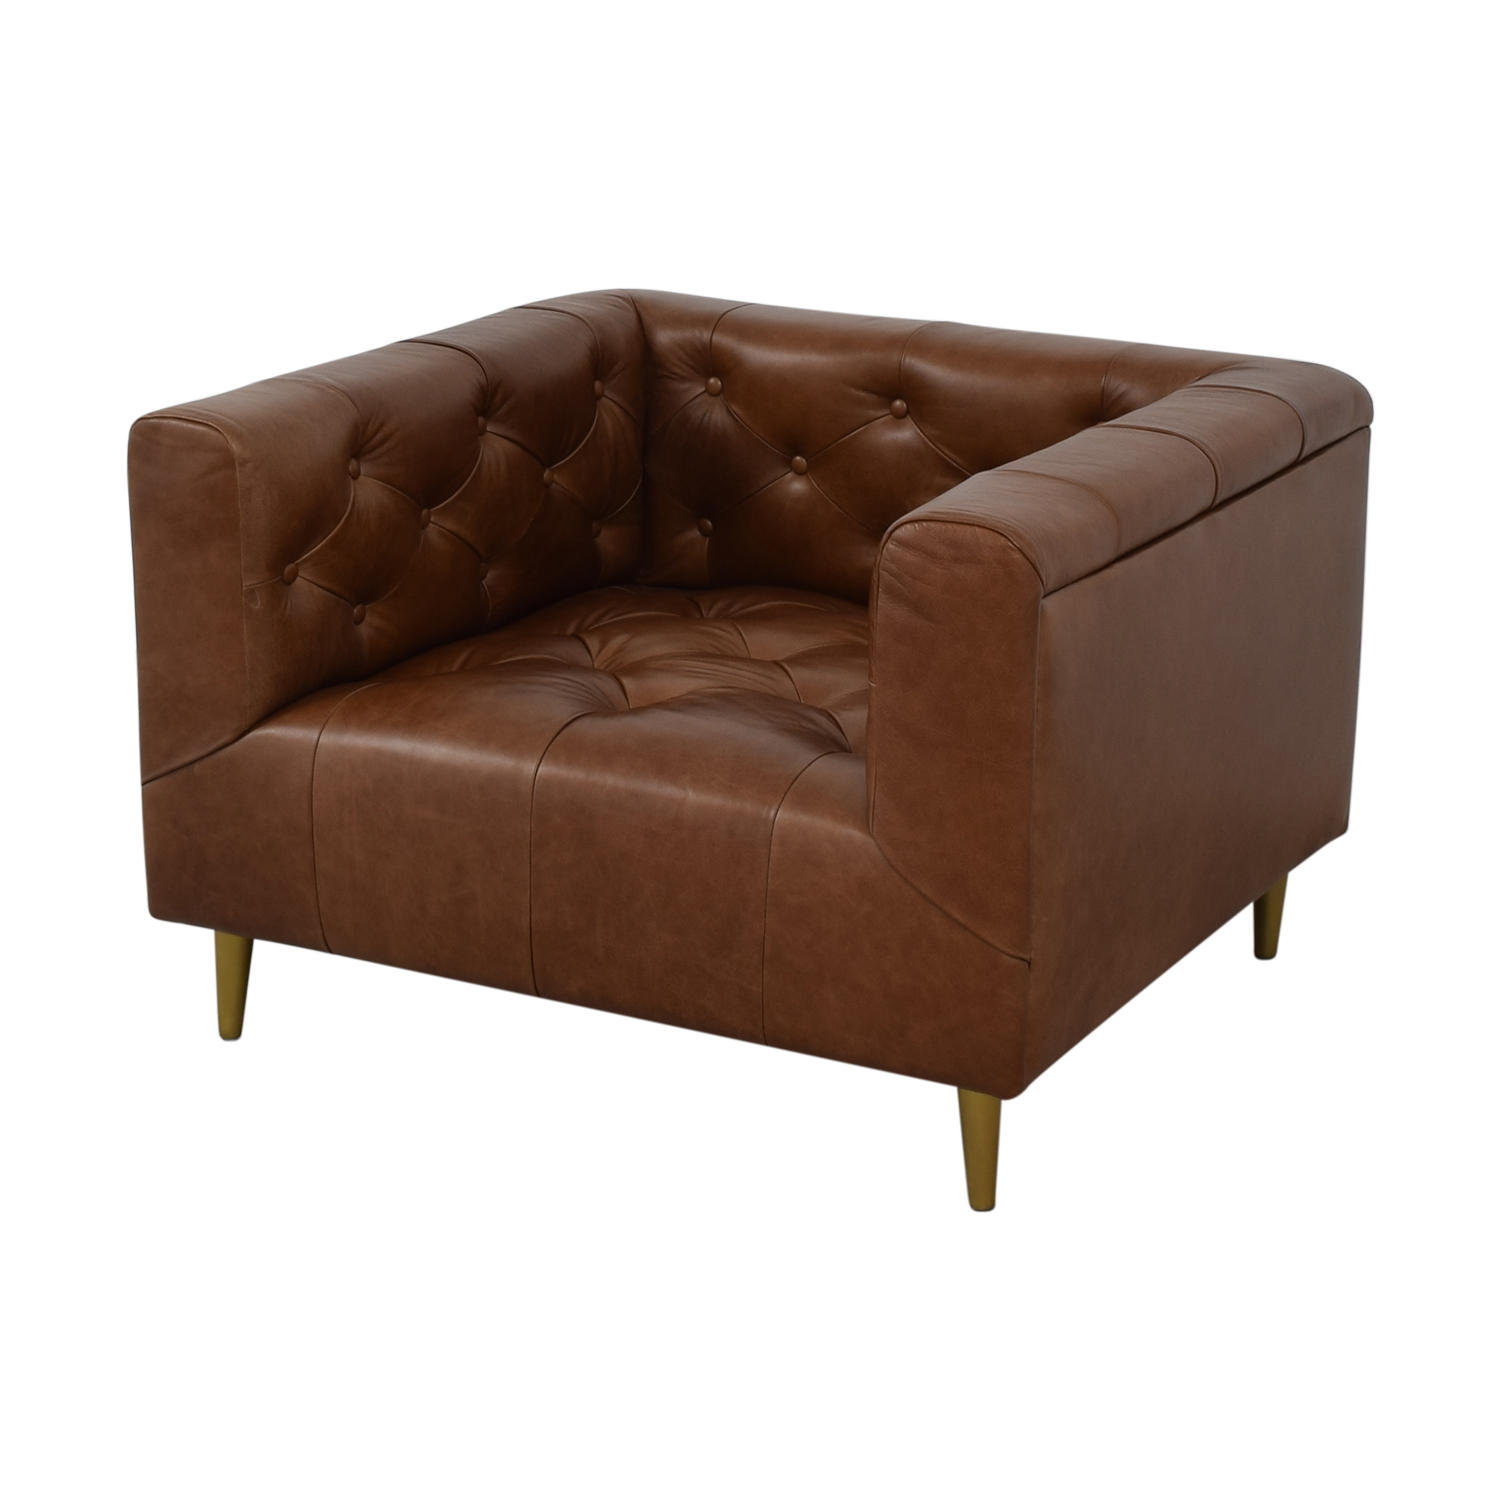 Interior Define Ms. Chesterfield Cognac Tufted Accent Chair dimensions